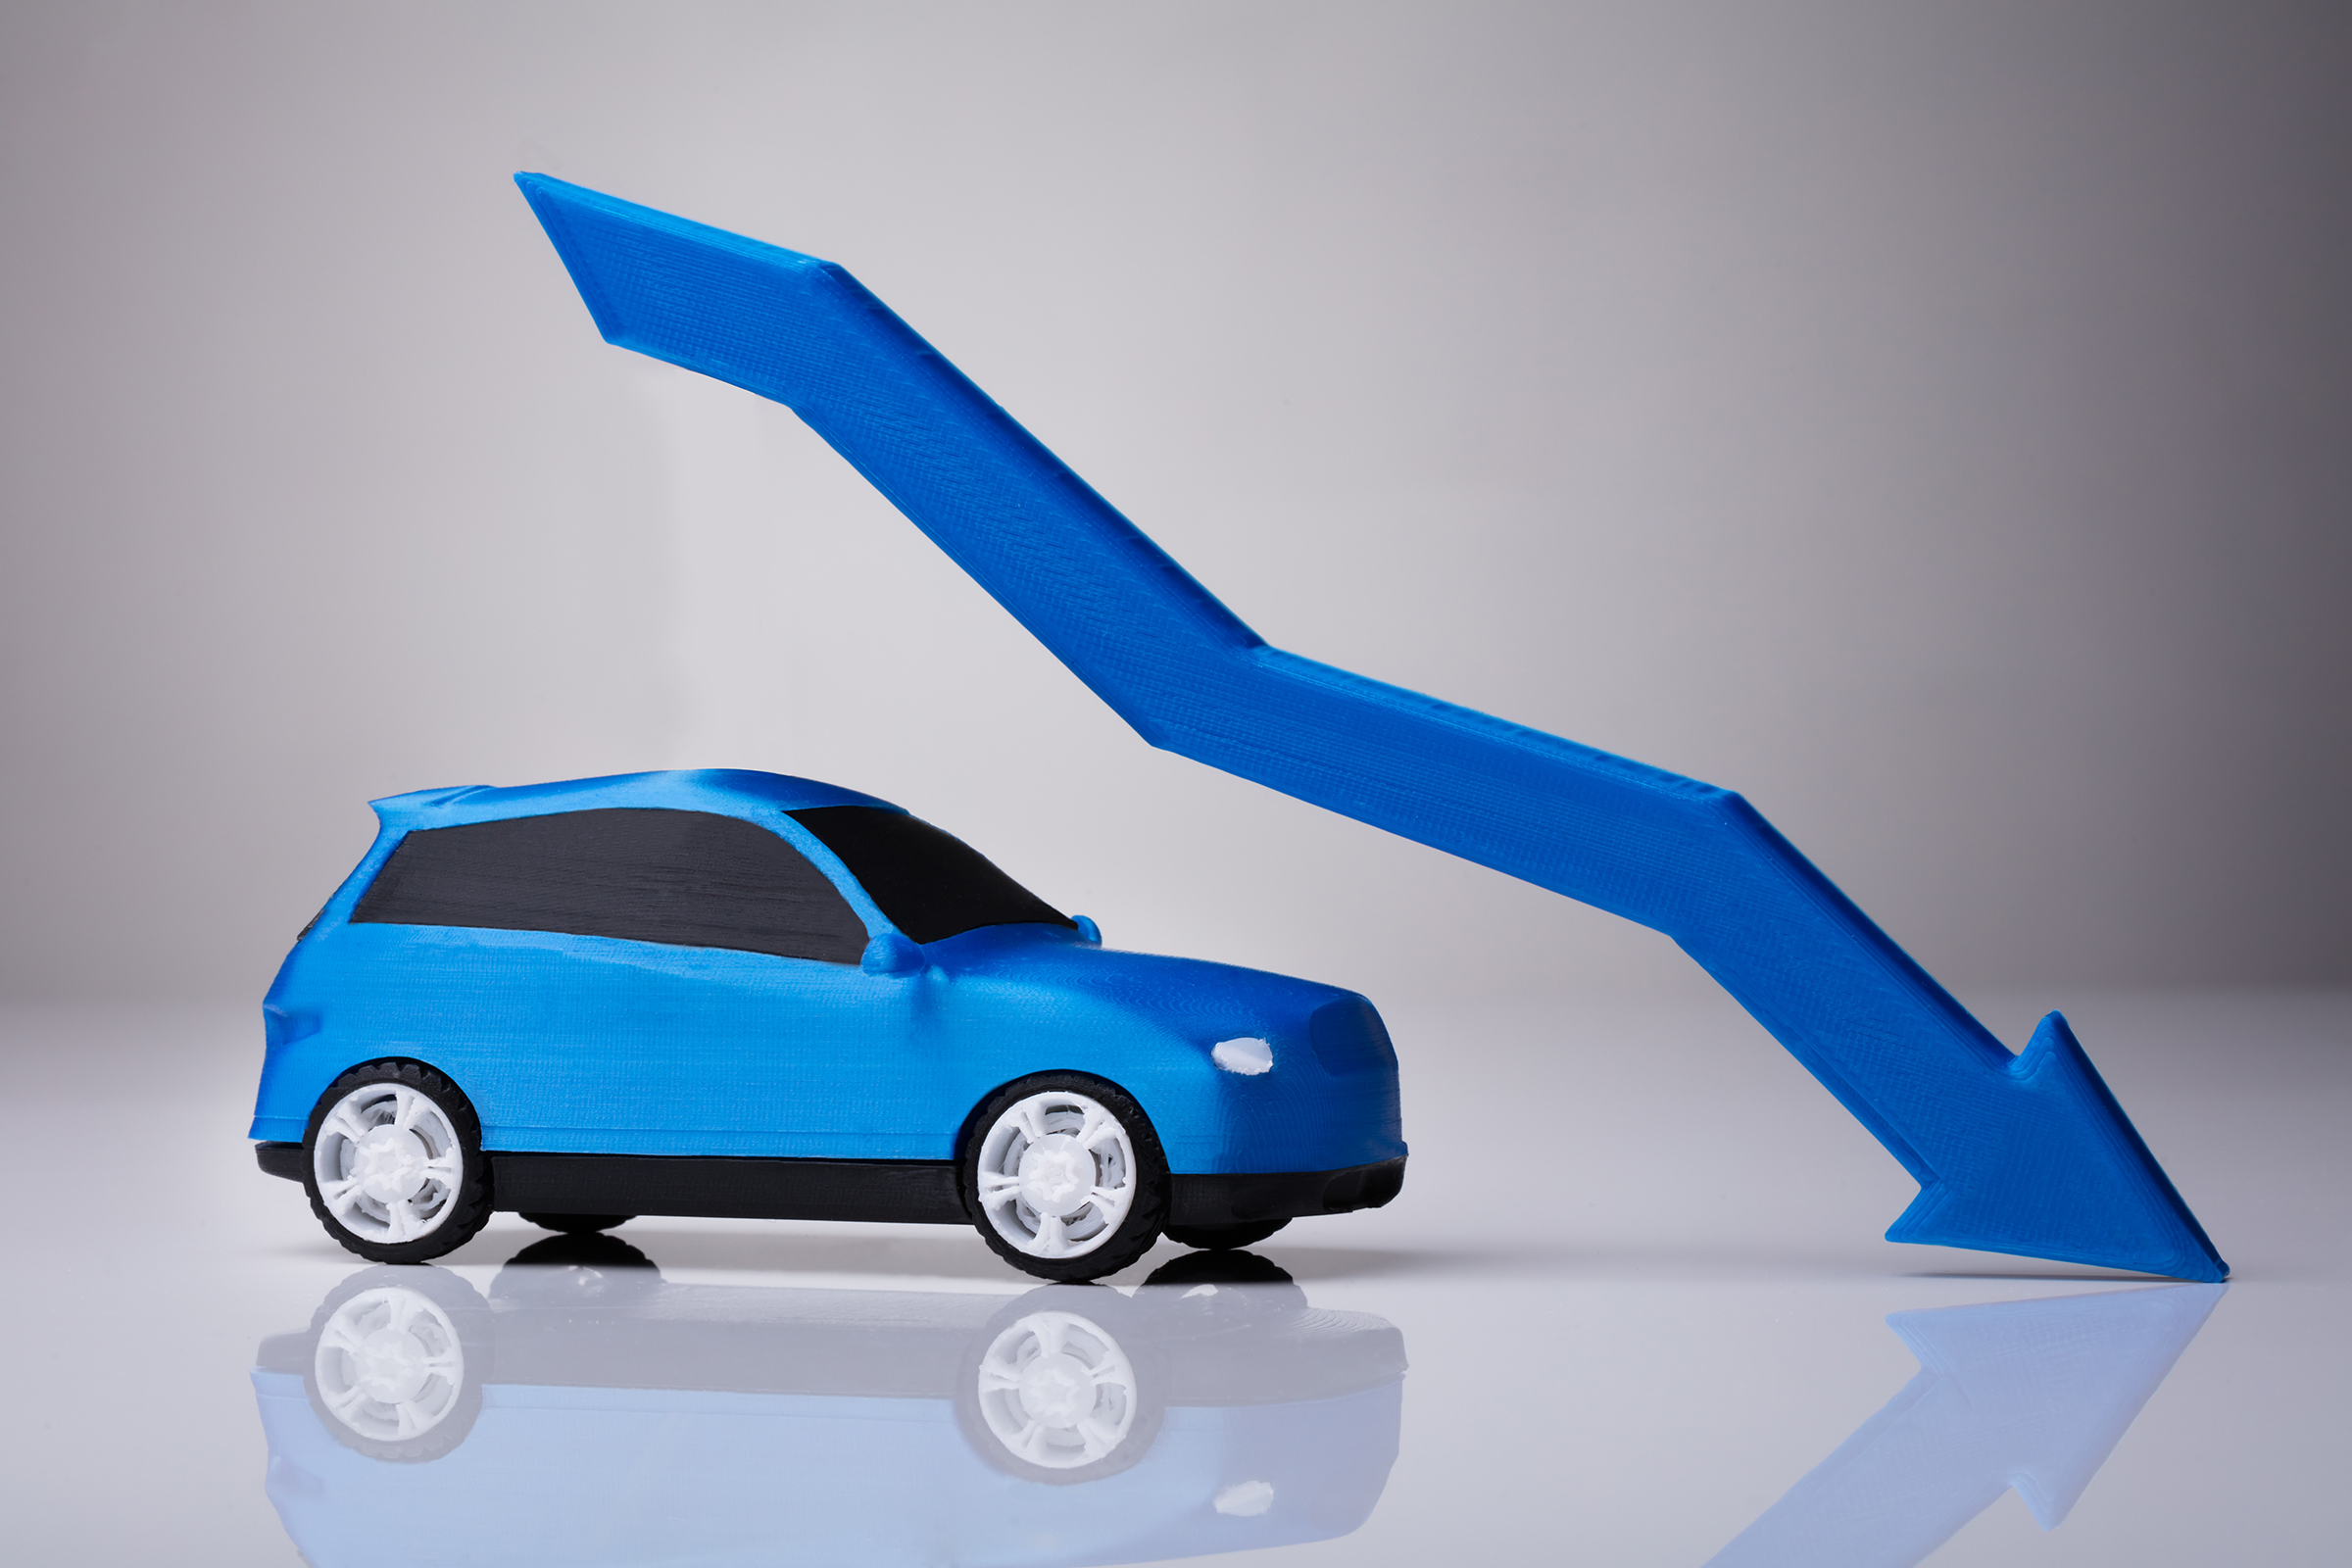 Auto Insurance Rates Going Down in Louisiana